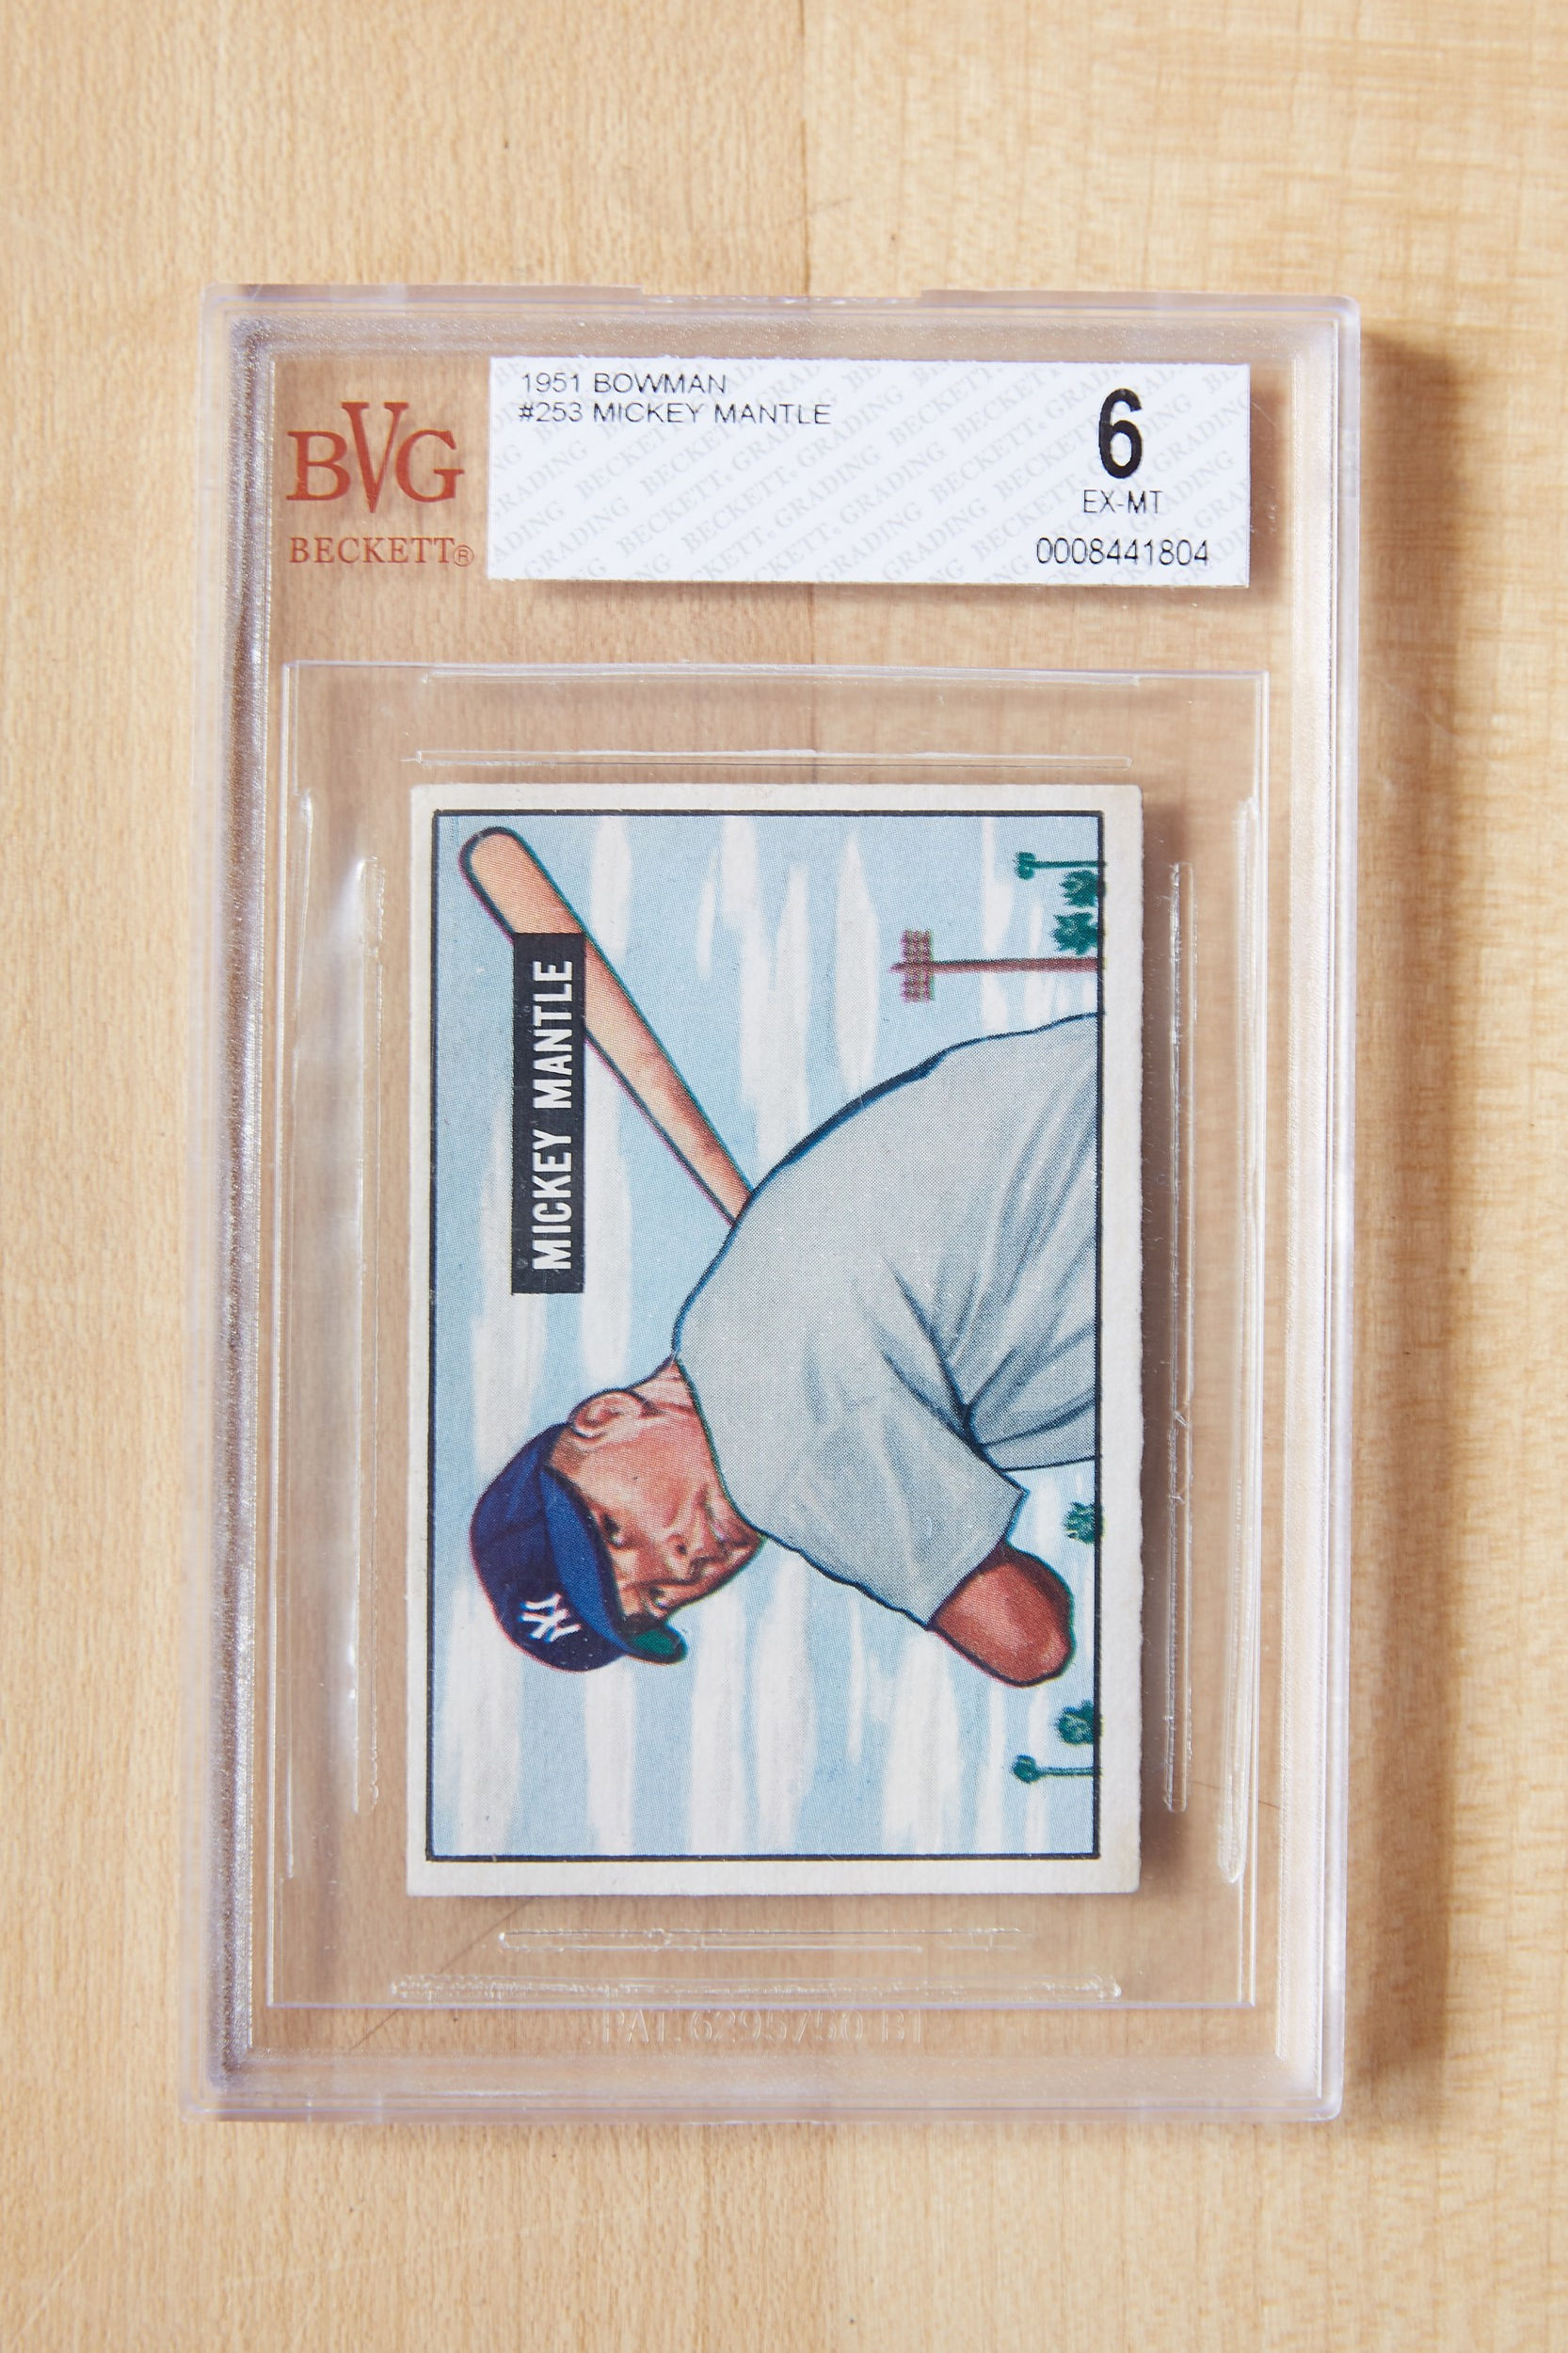 Mantle Rookie Card